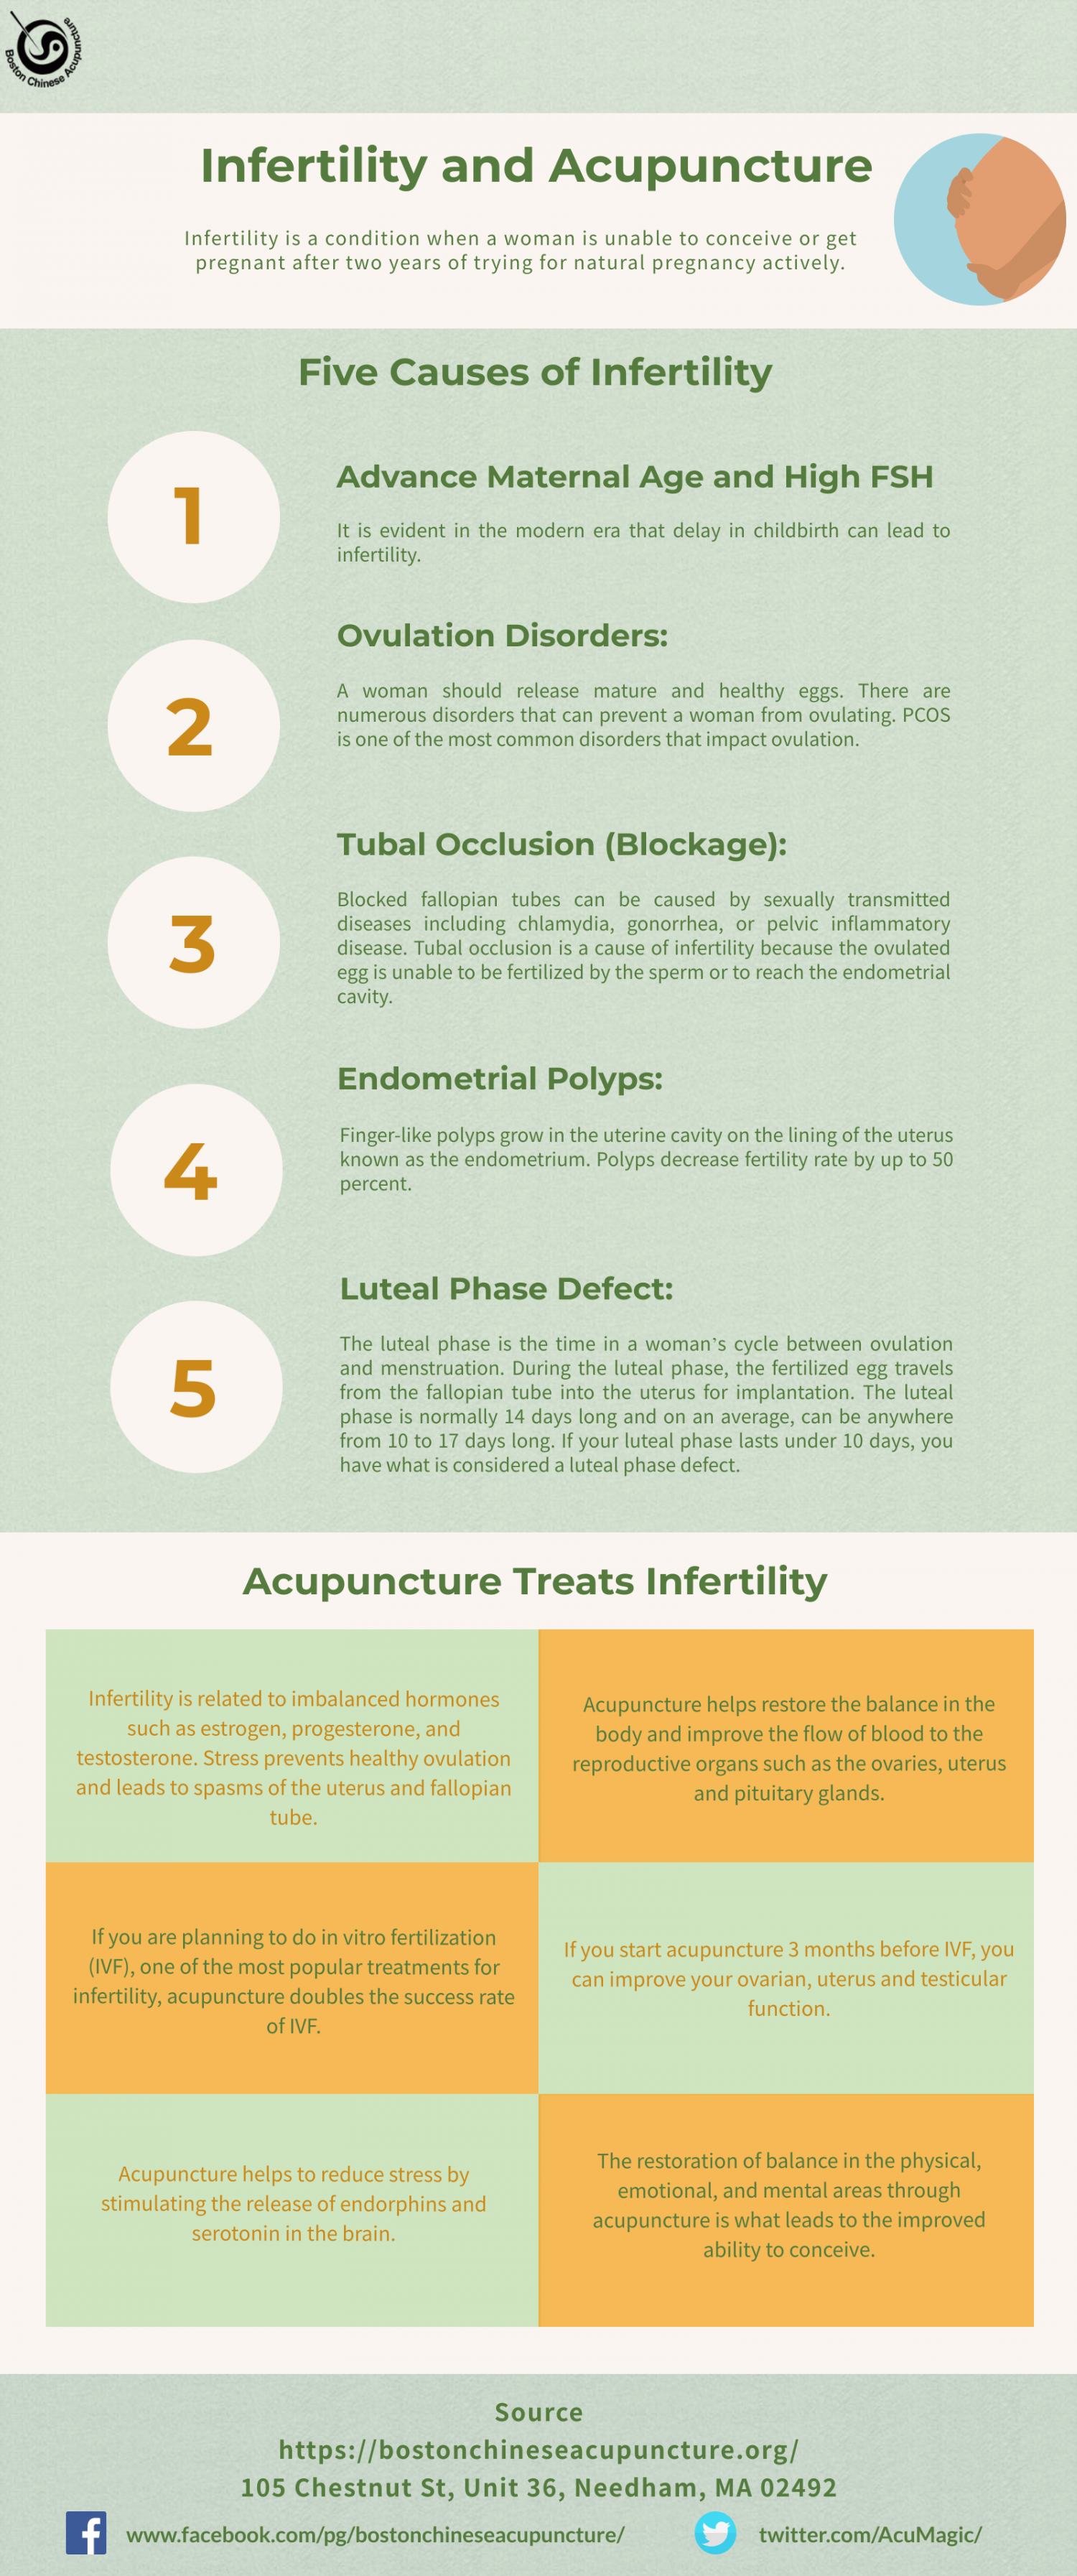 How Acupuncture Treats Infertility